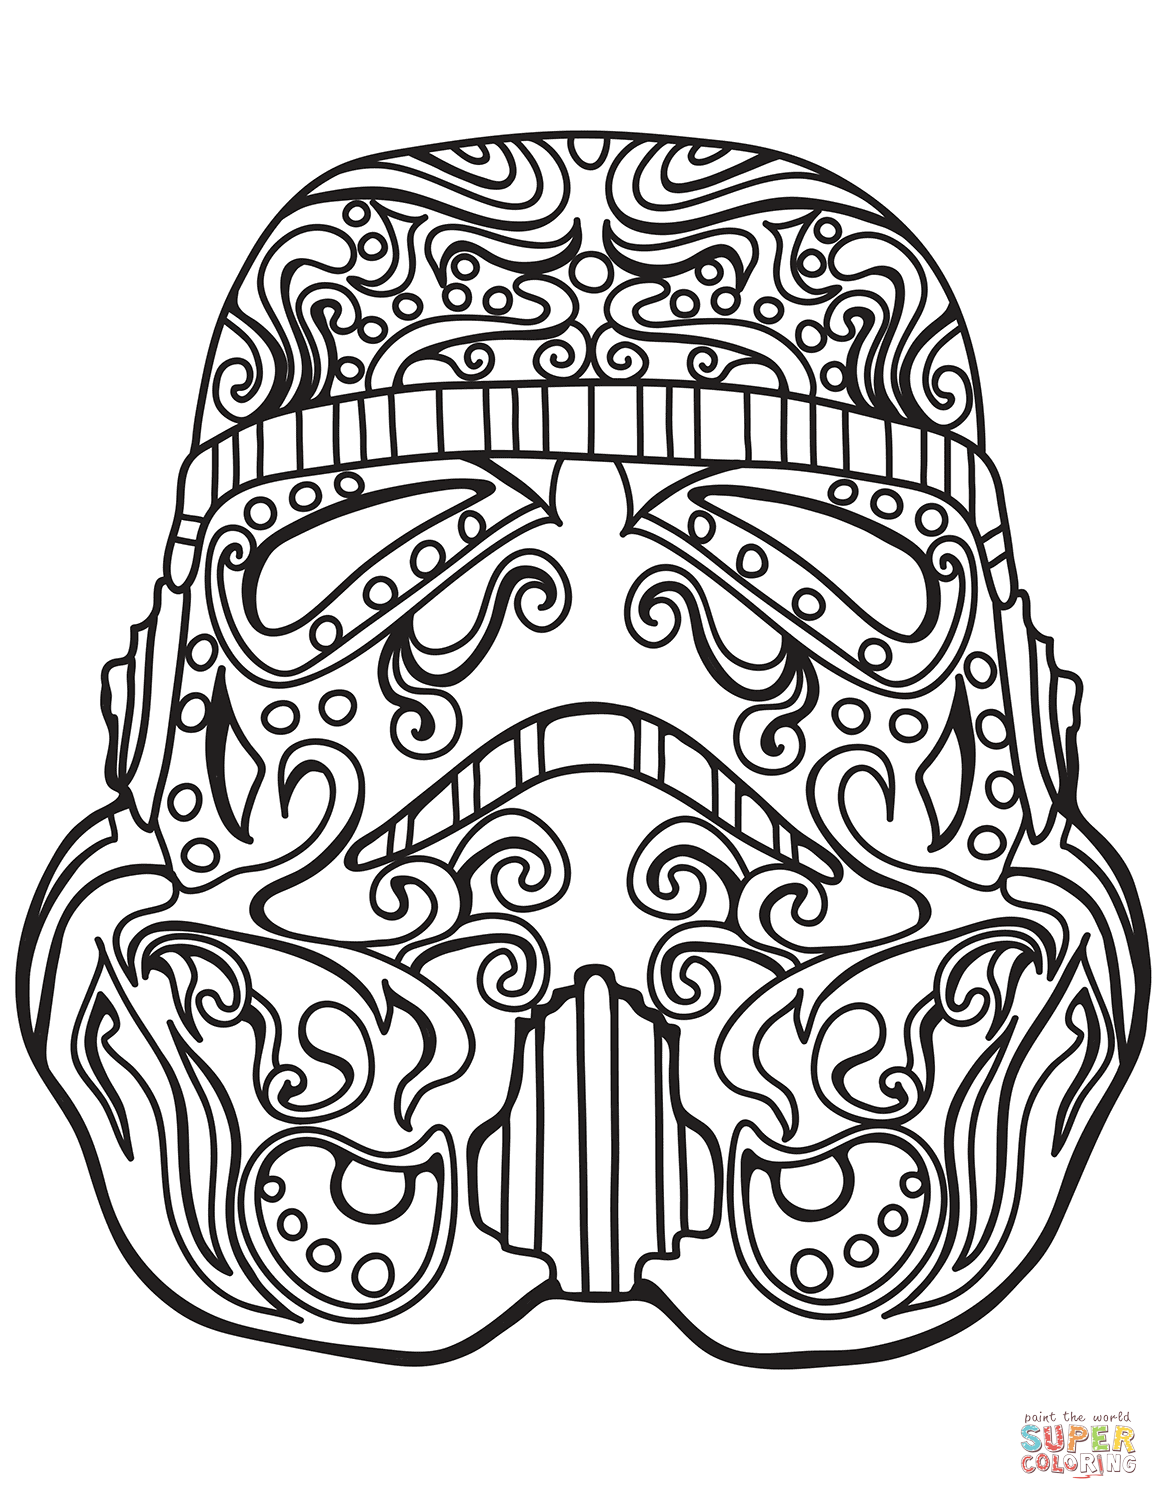 Star Wars Stormtrooper Sugar Skull Coloring Page